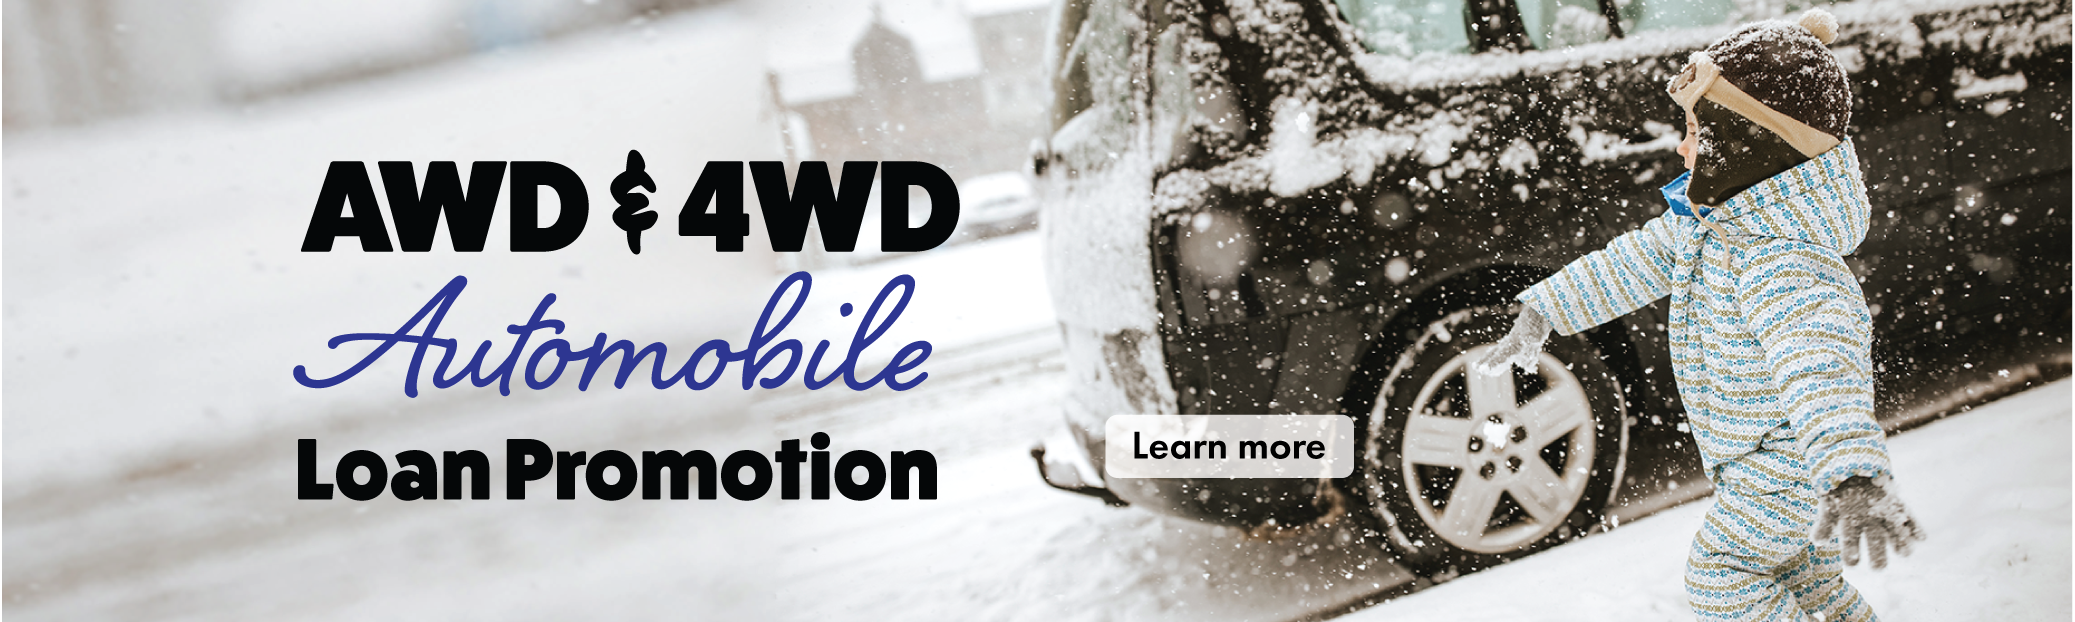 AWD Automobile Promotion